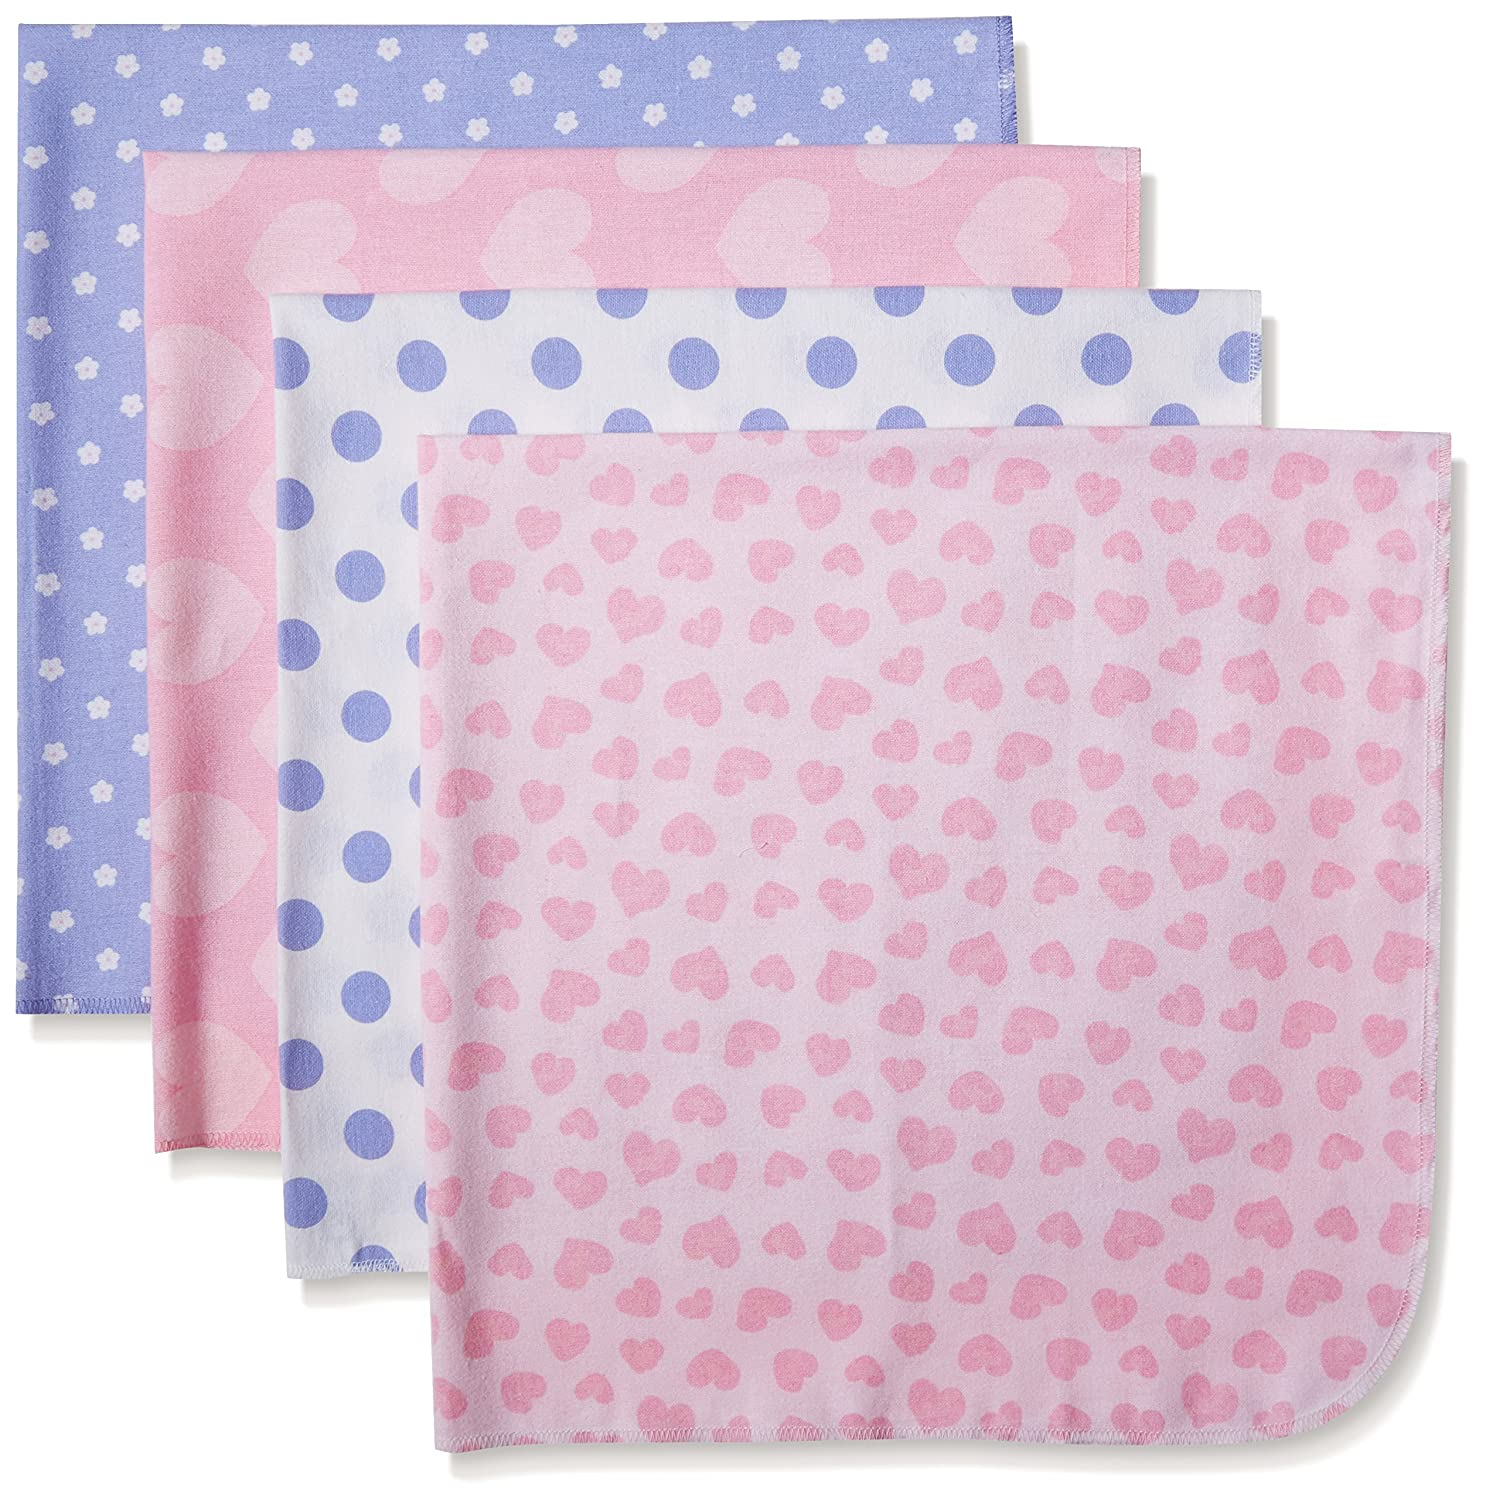 Gerber baby-girls Baby 4 Pack Flannel Receiving Blankets Flowers One Size (Pack of 4) Gerber Children' s Apparel 85015416AG16OSZ